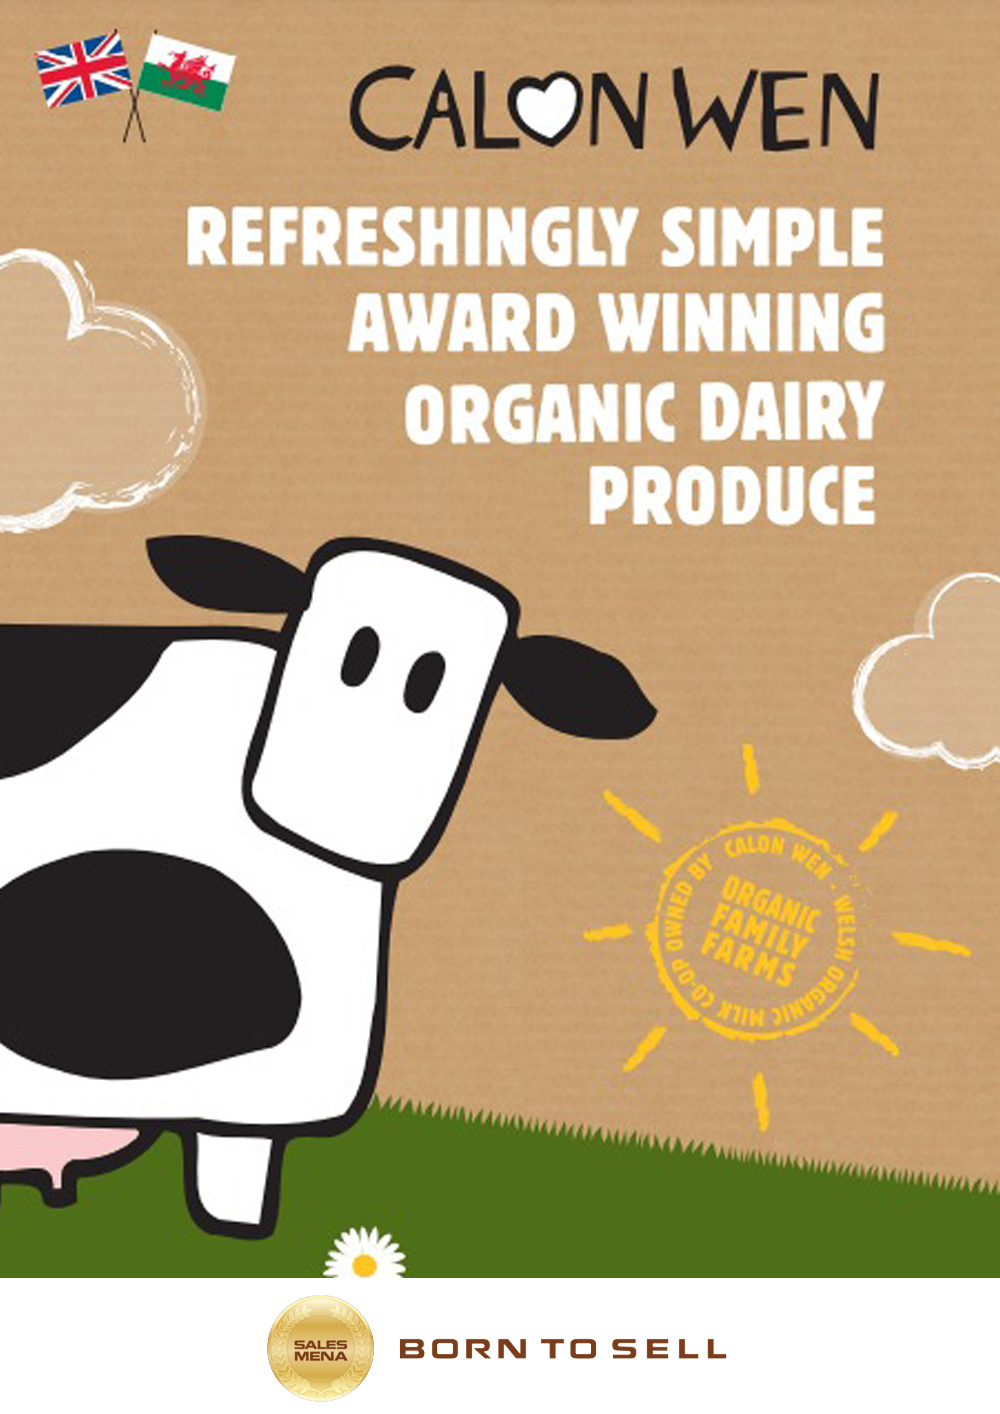 Calon Wen Organic Dairy Produce Ltd